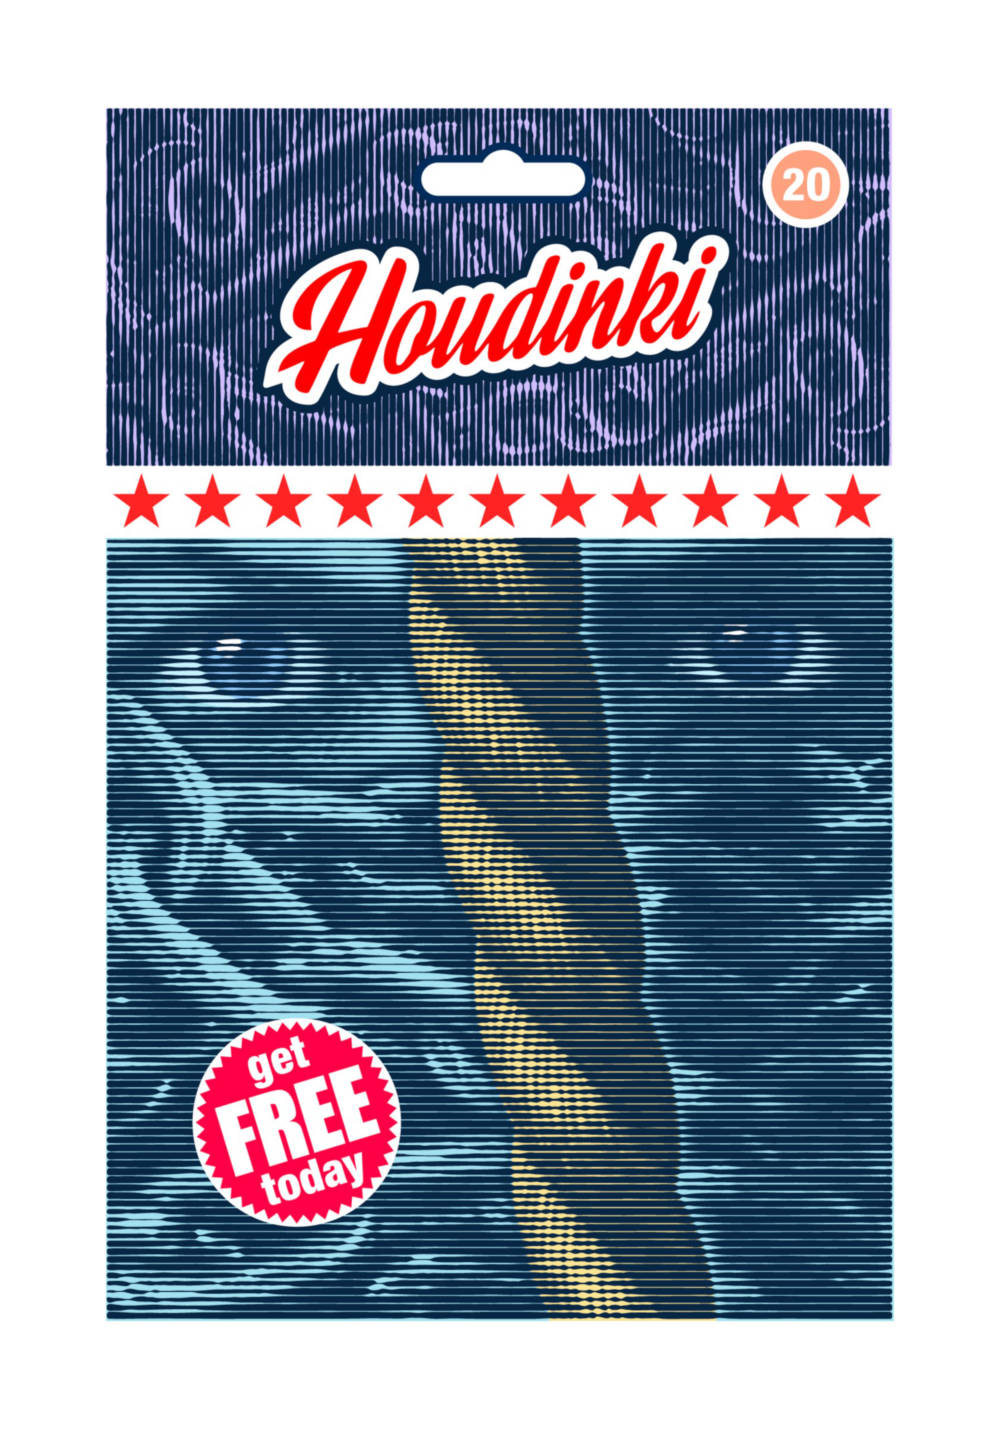 Free Houdini Collectible